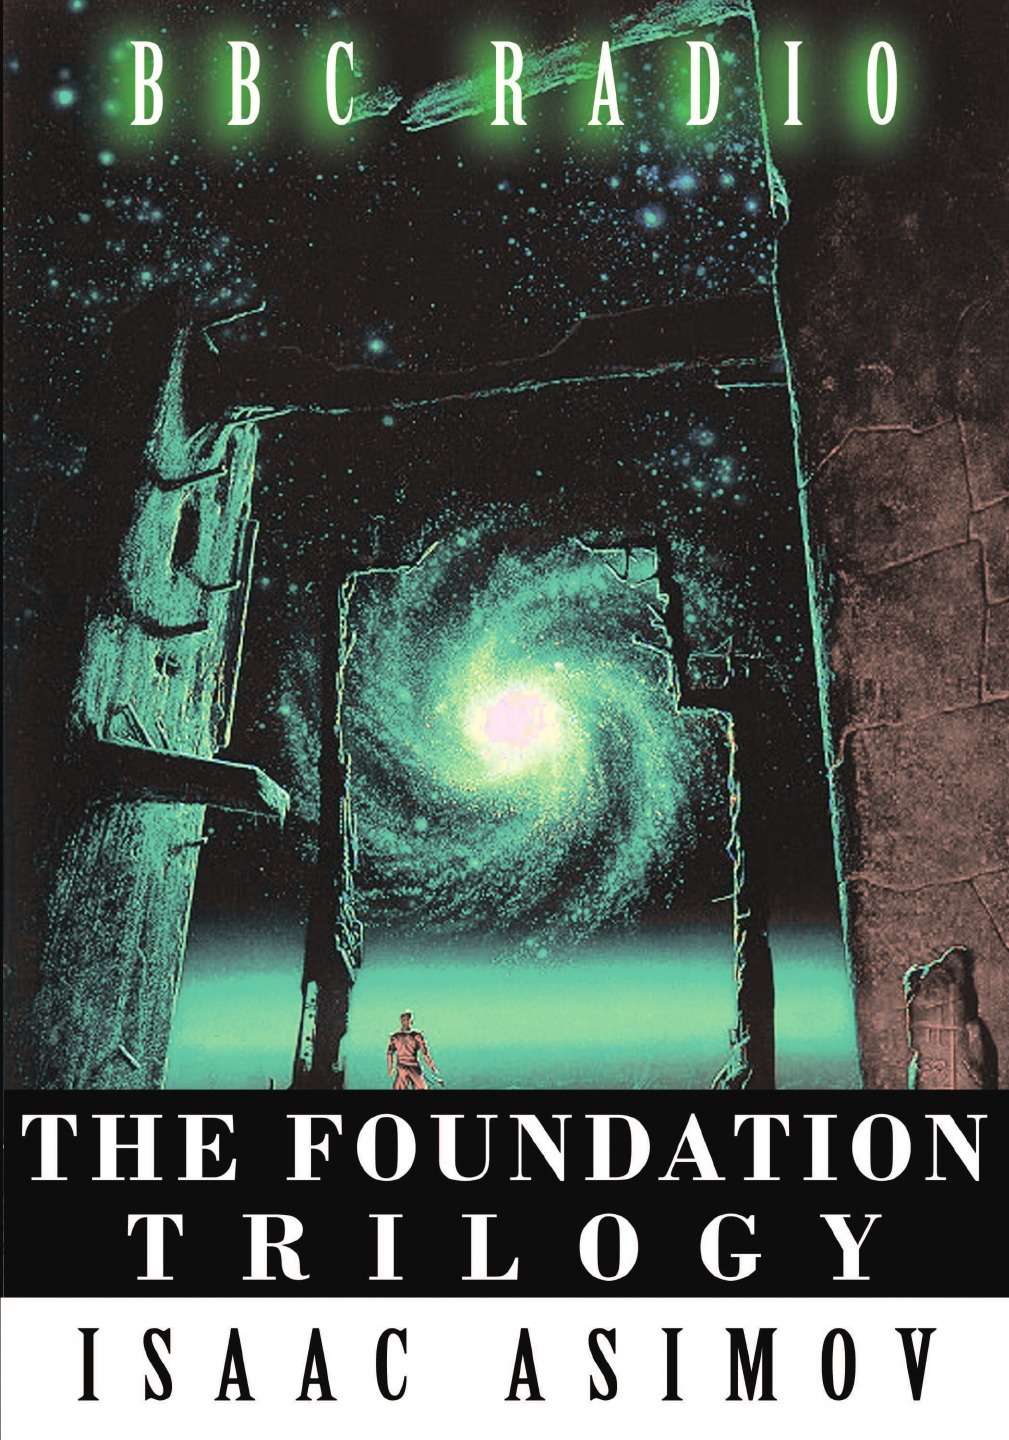 Isaac Asimov The Foundation Trilogy (Adapted by BBC Radio) This book is a transcription of the radio broadcast